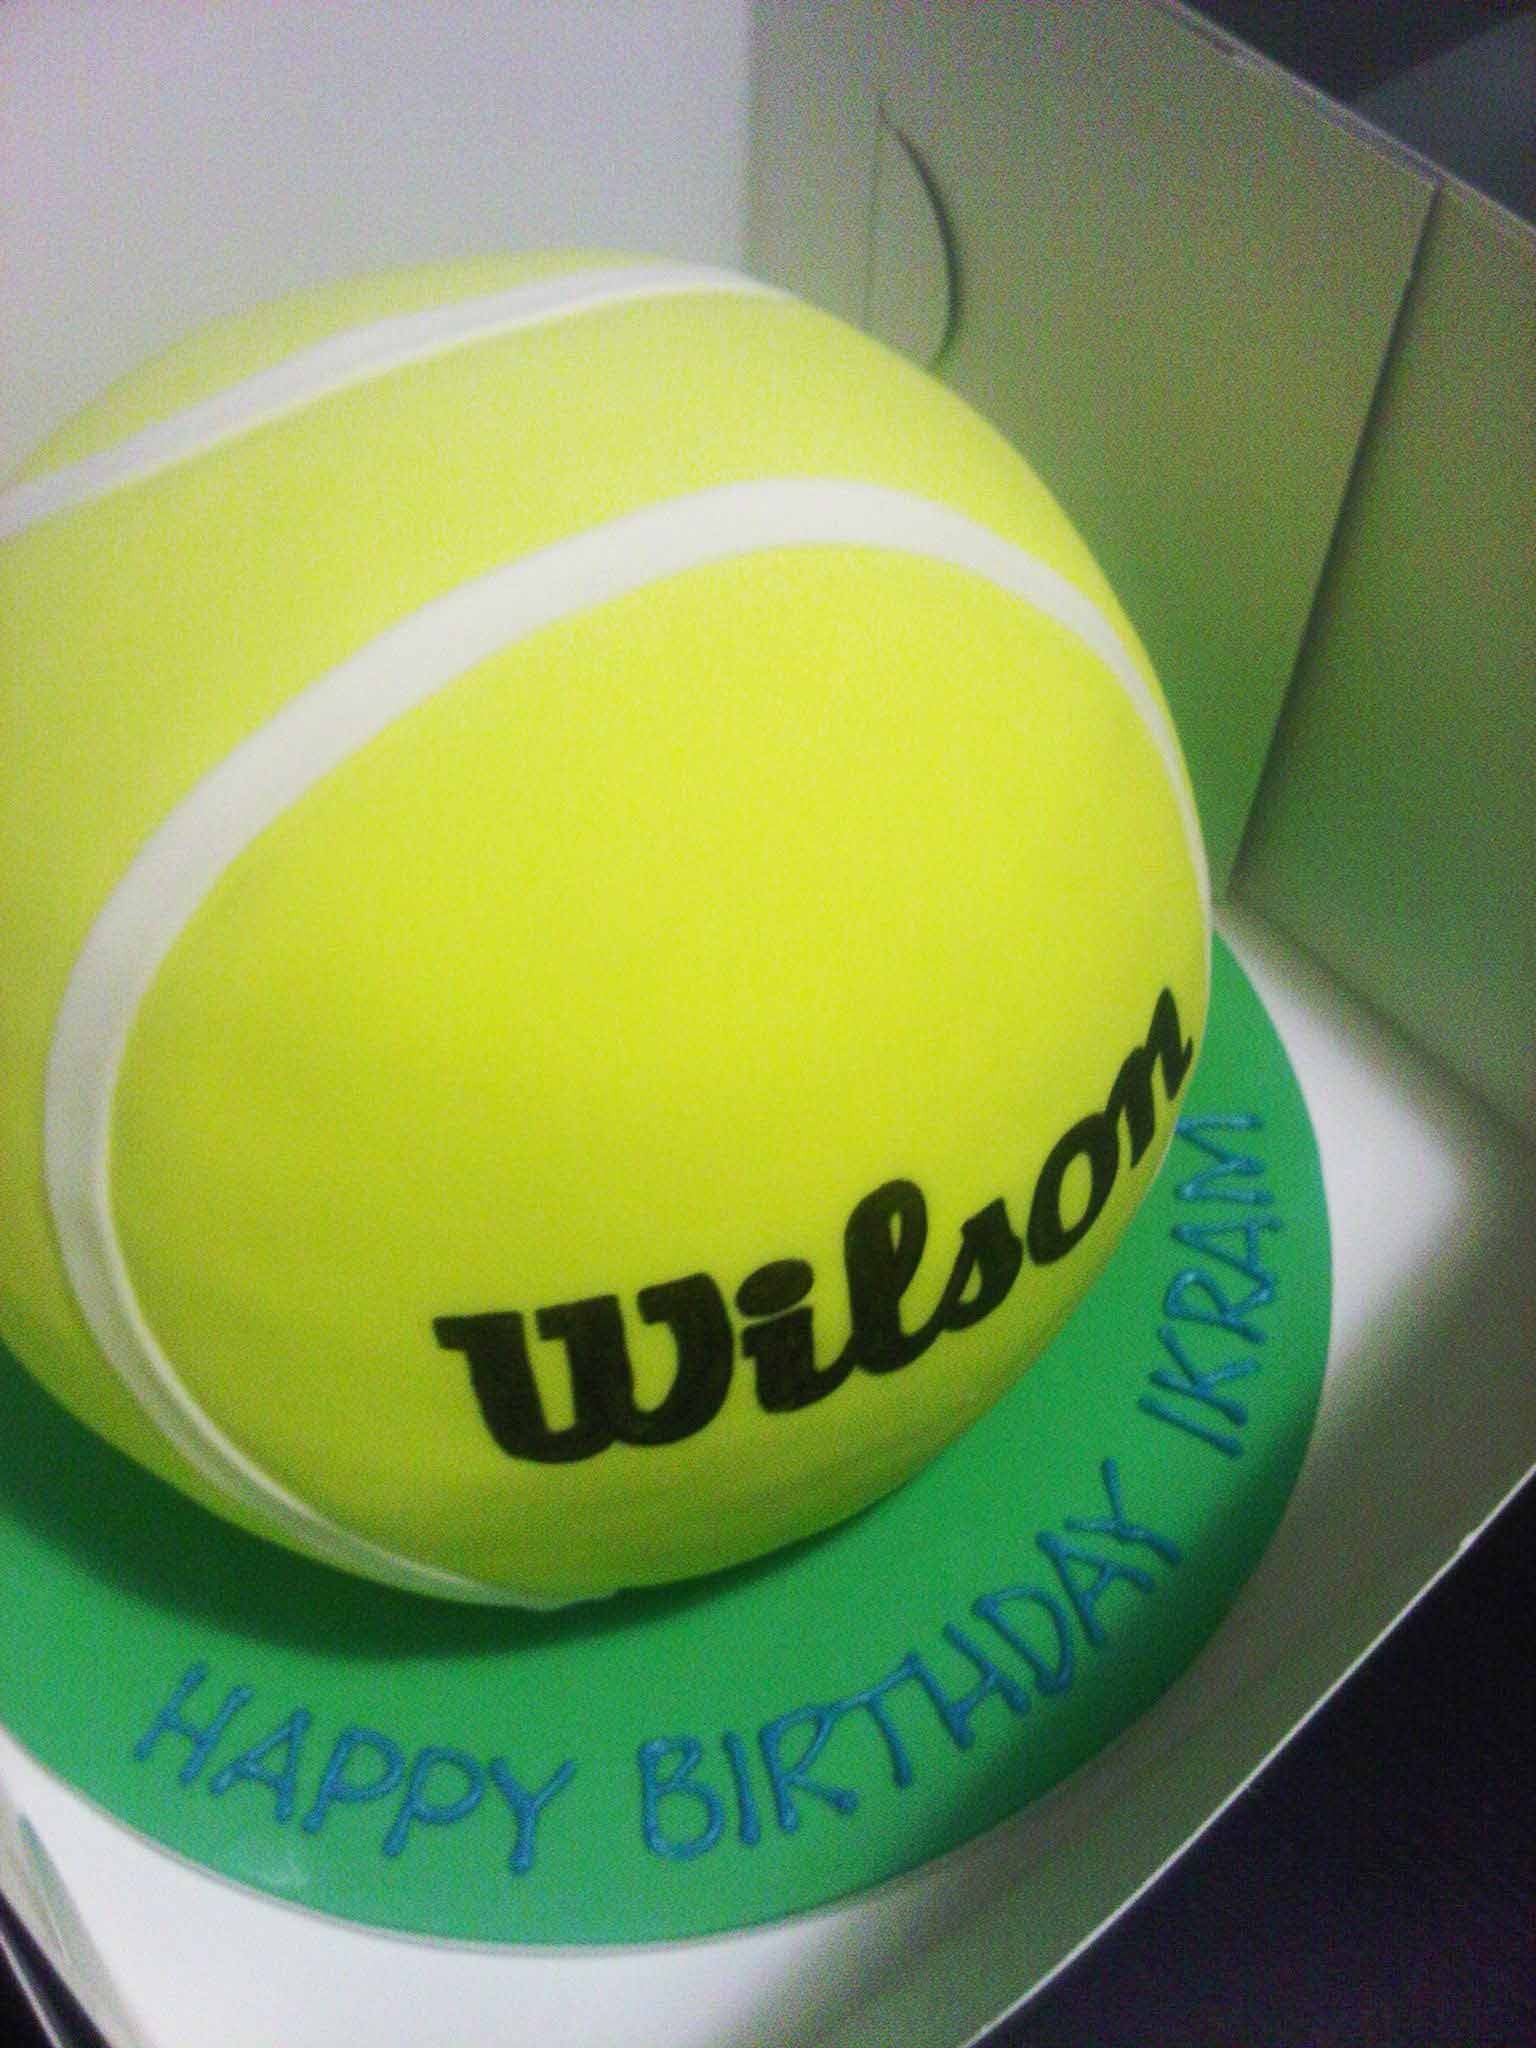 Tennis Ball Cake Looking Totally Amazing We Love And Had To Share Great Cakedecorating By The November Bakery Tennis Cake Tennis Cupcakes Tennis Birthday